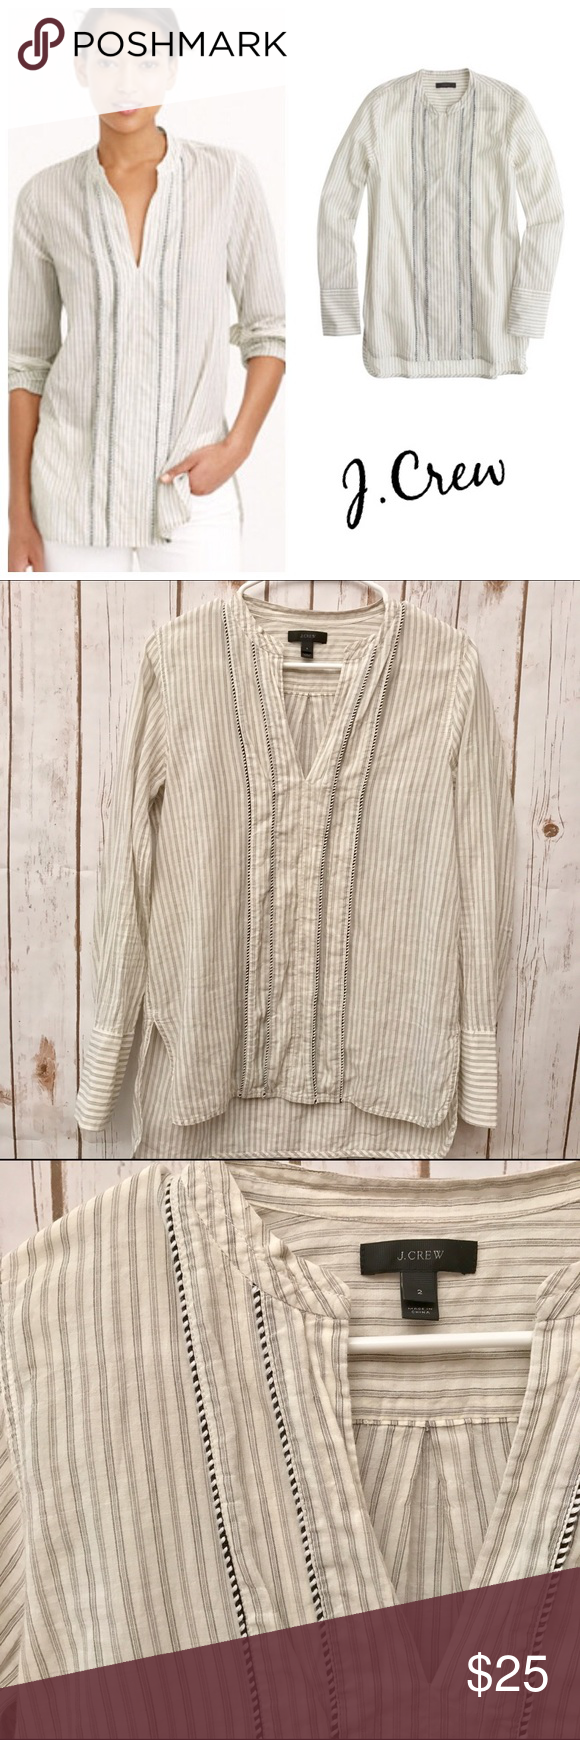 J.Crew Corded Popover Blouse Please excuse the wrinkles. In great preloved condition. A striped tunic in a feminine, floaty cotton that's finished with a corded trim detail is simply perfect for any wardrobe.  Cotton/elastane. Long roll-up sleeves. Front slit. Machine wash. Import. Item C1399. J. Crew Tops Blouses